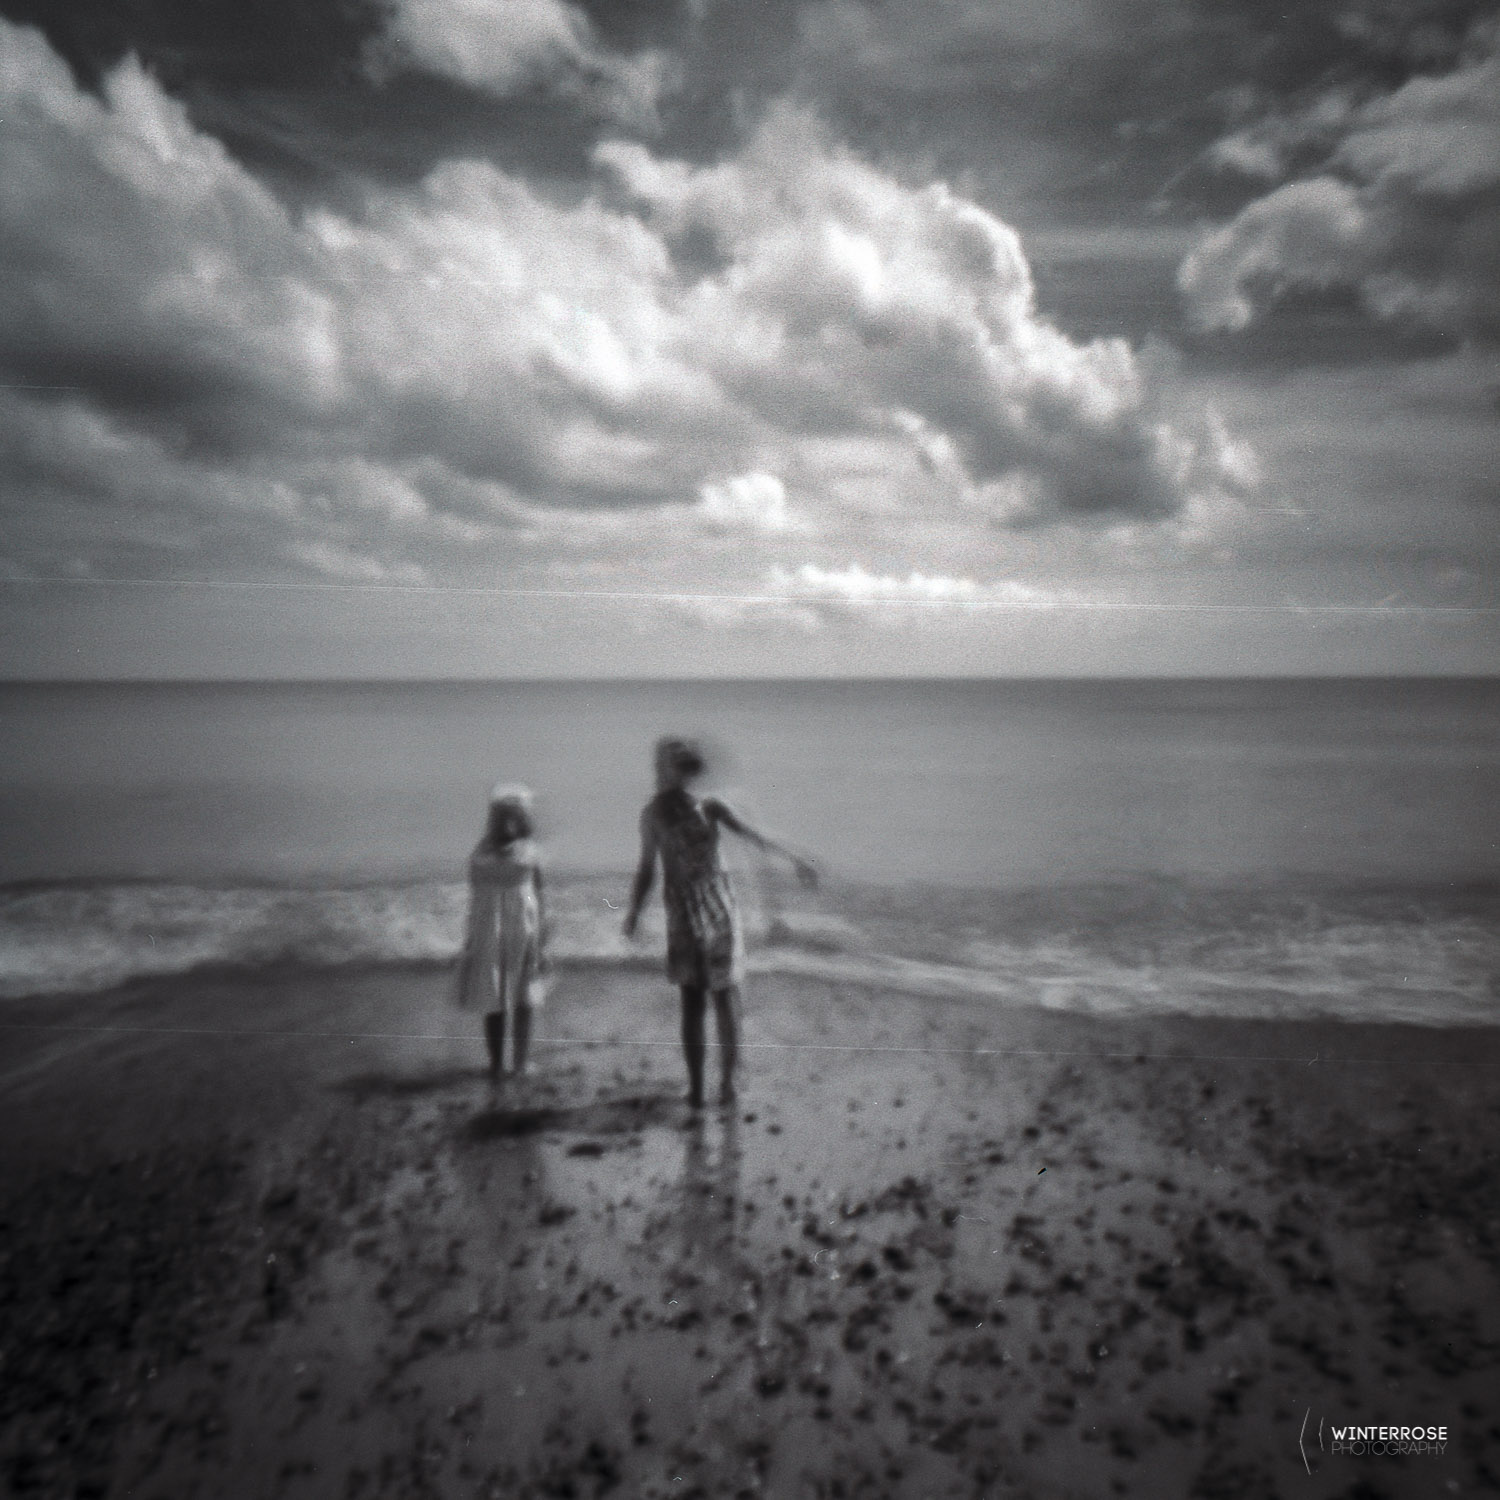 A pretty quick exposure (1 second) for pinhole, but it was an extremely bright day at the beach with the kids. Complete with scratches and dust too!